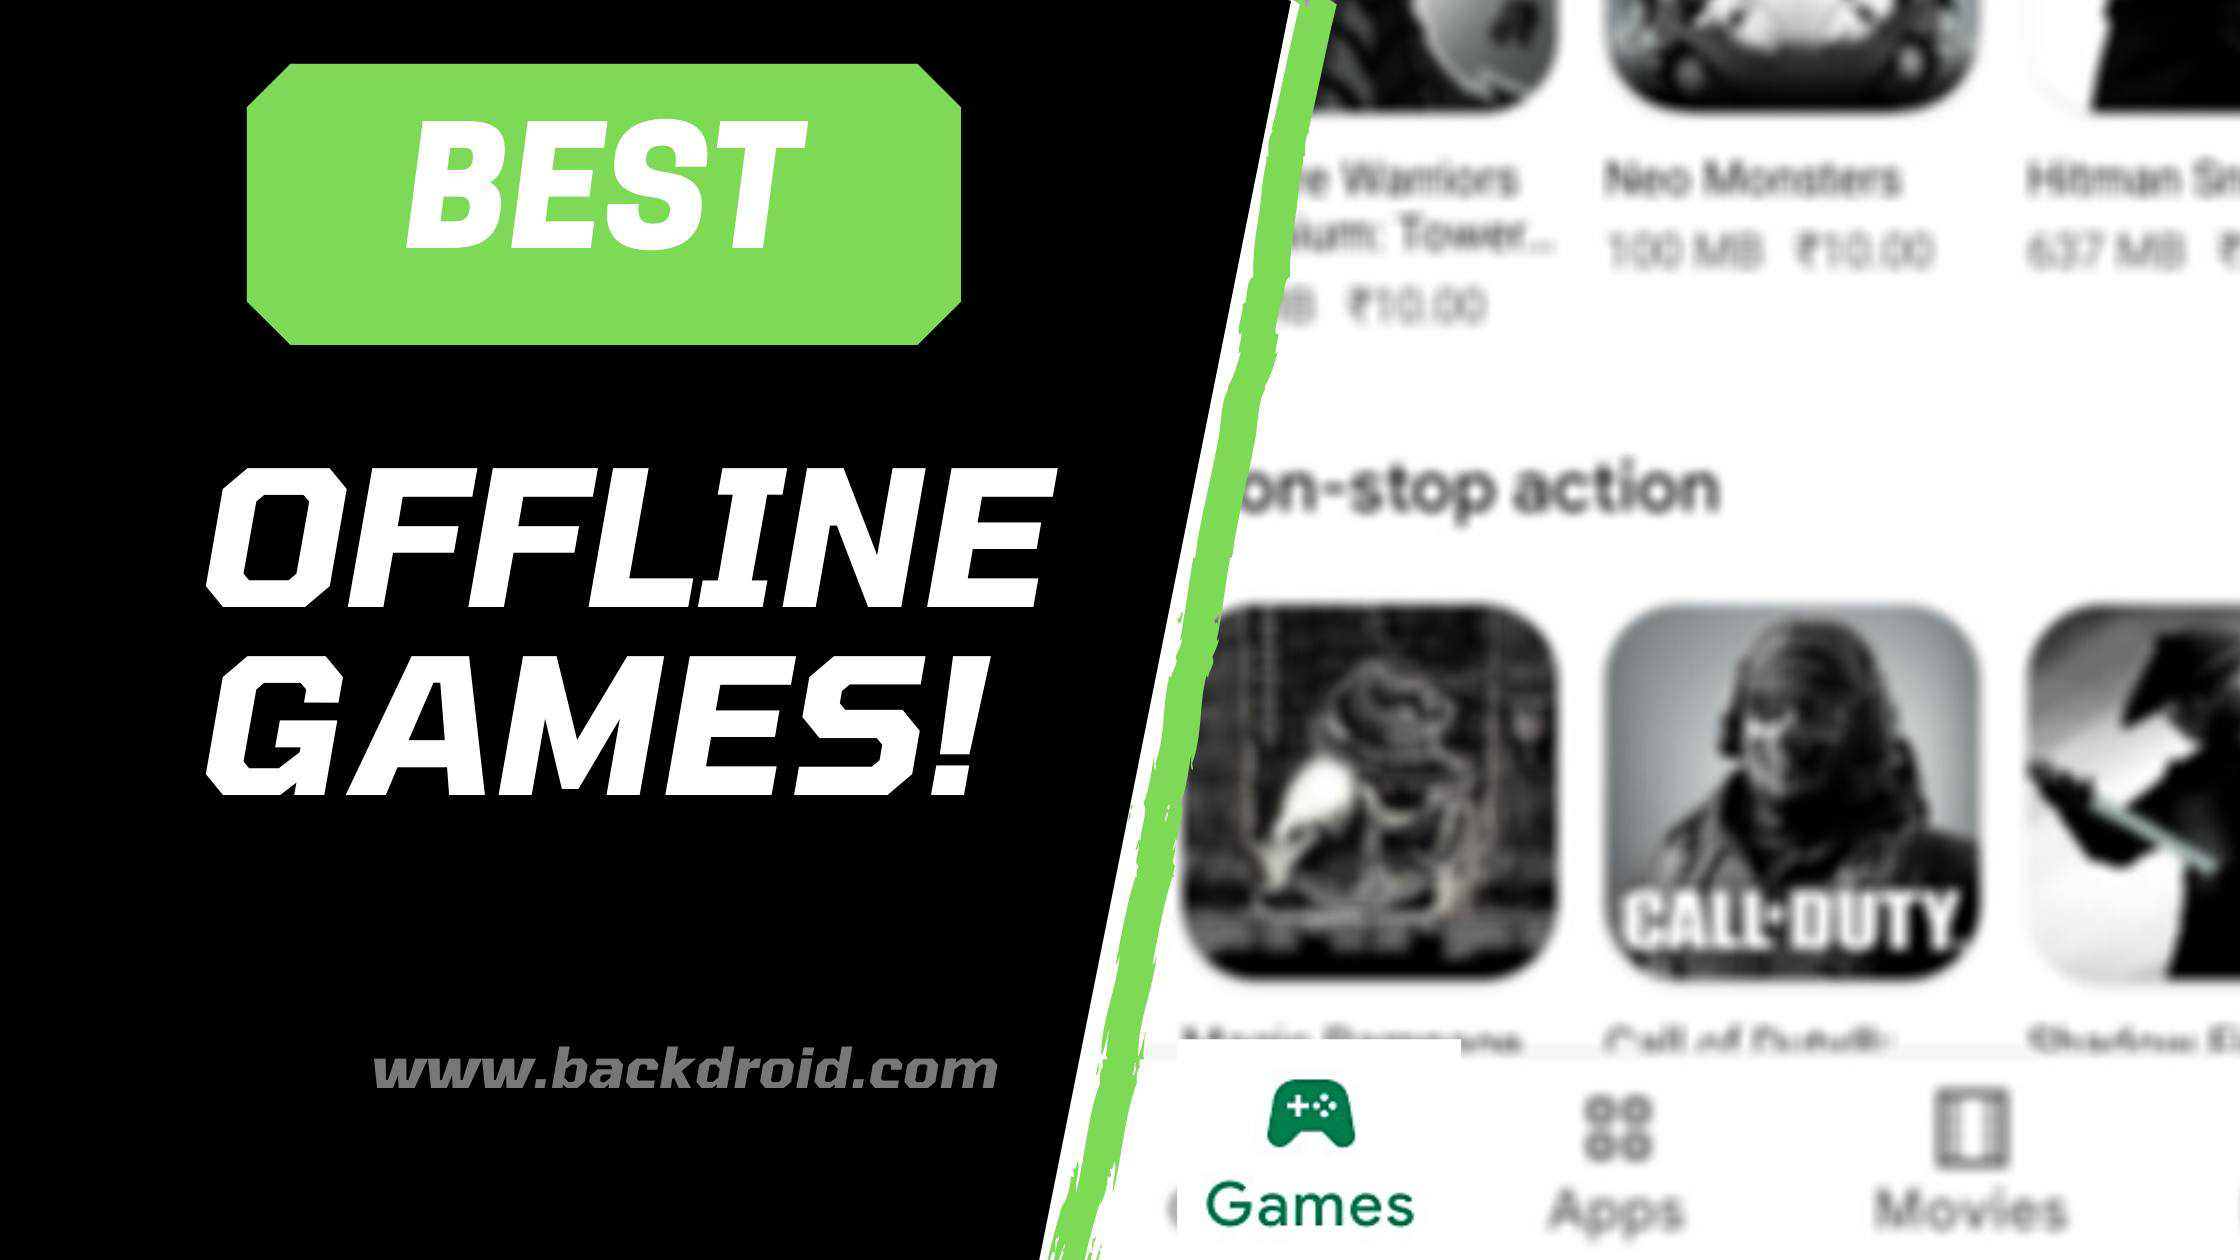 5 best offline games for android